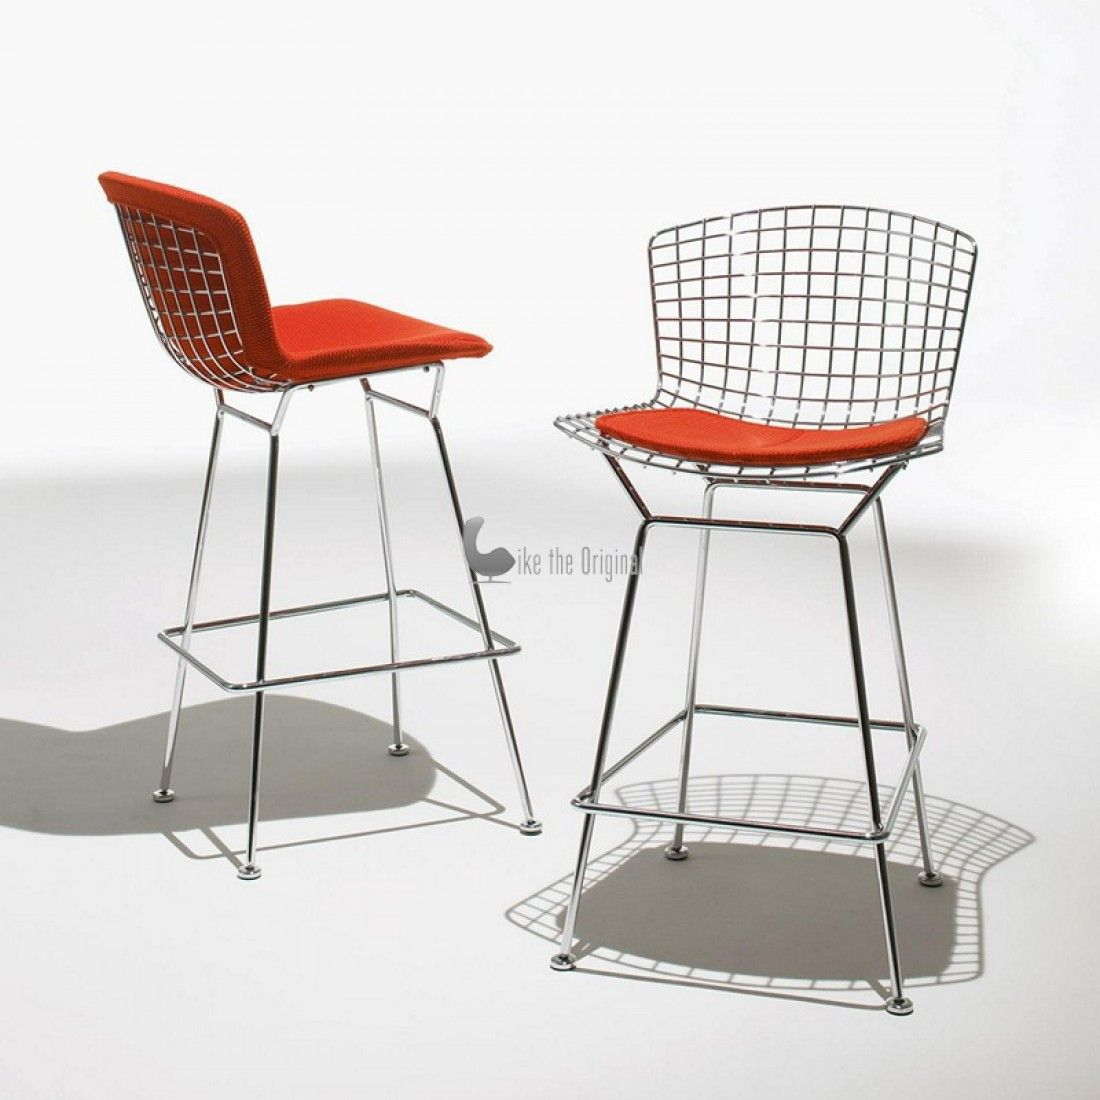 knoll harry bertoia barstool with seat cushion. Knoll is the only  authorized and